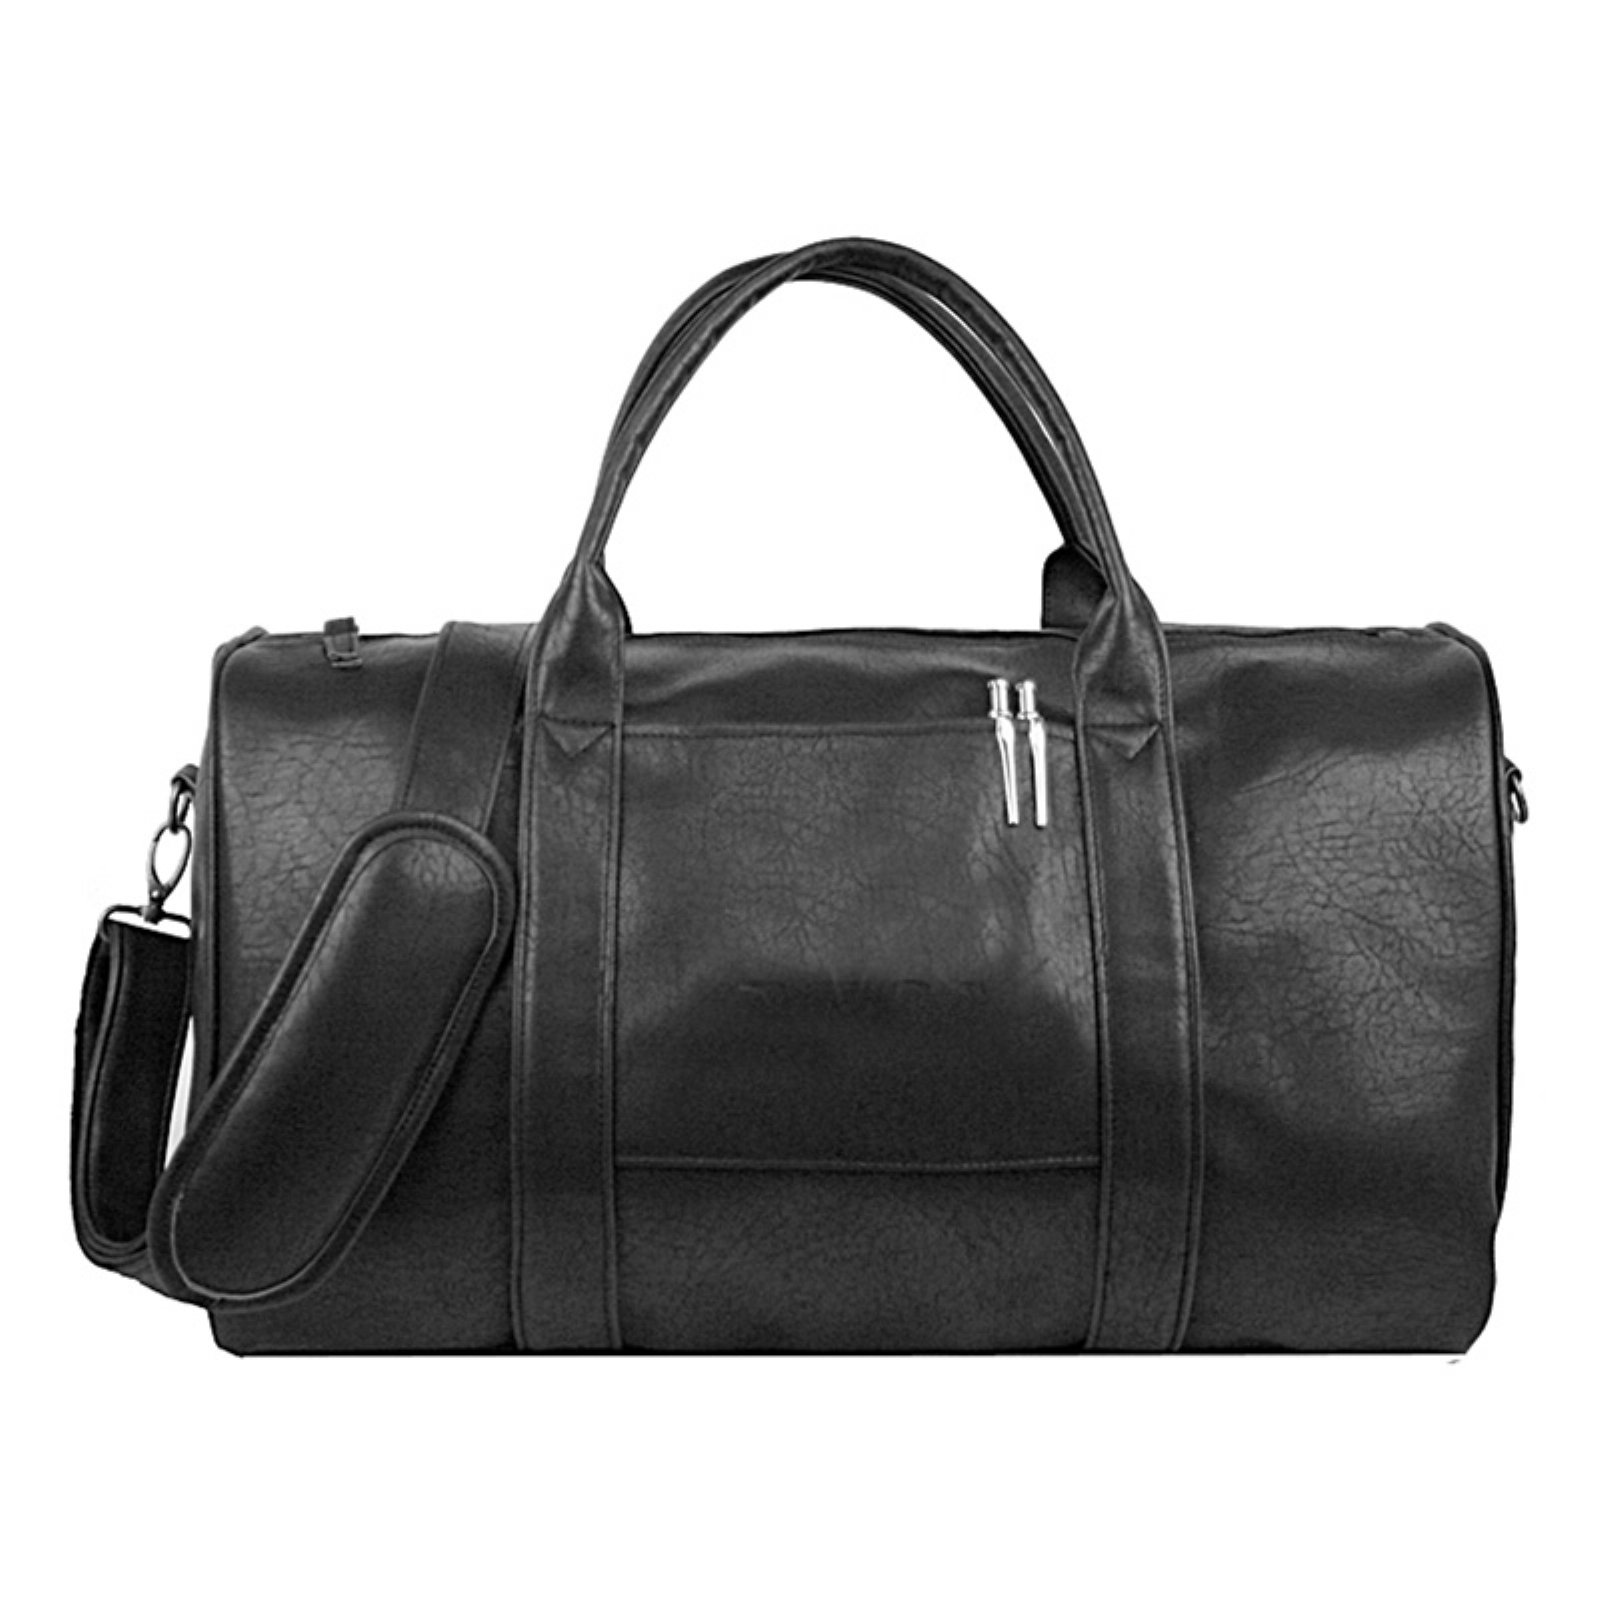 Travelwell Elegant Carry On Duffel Bag